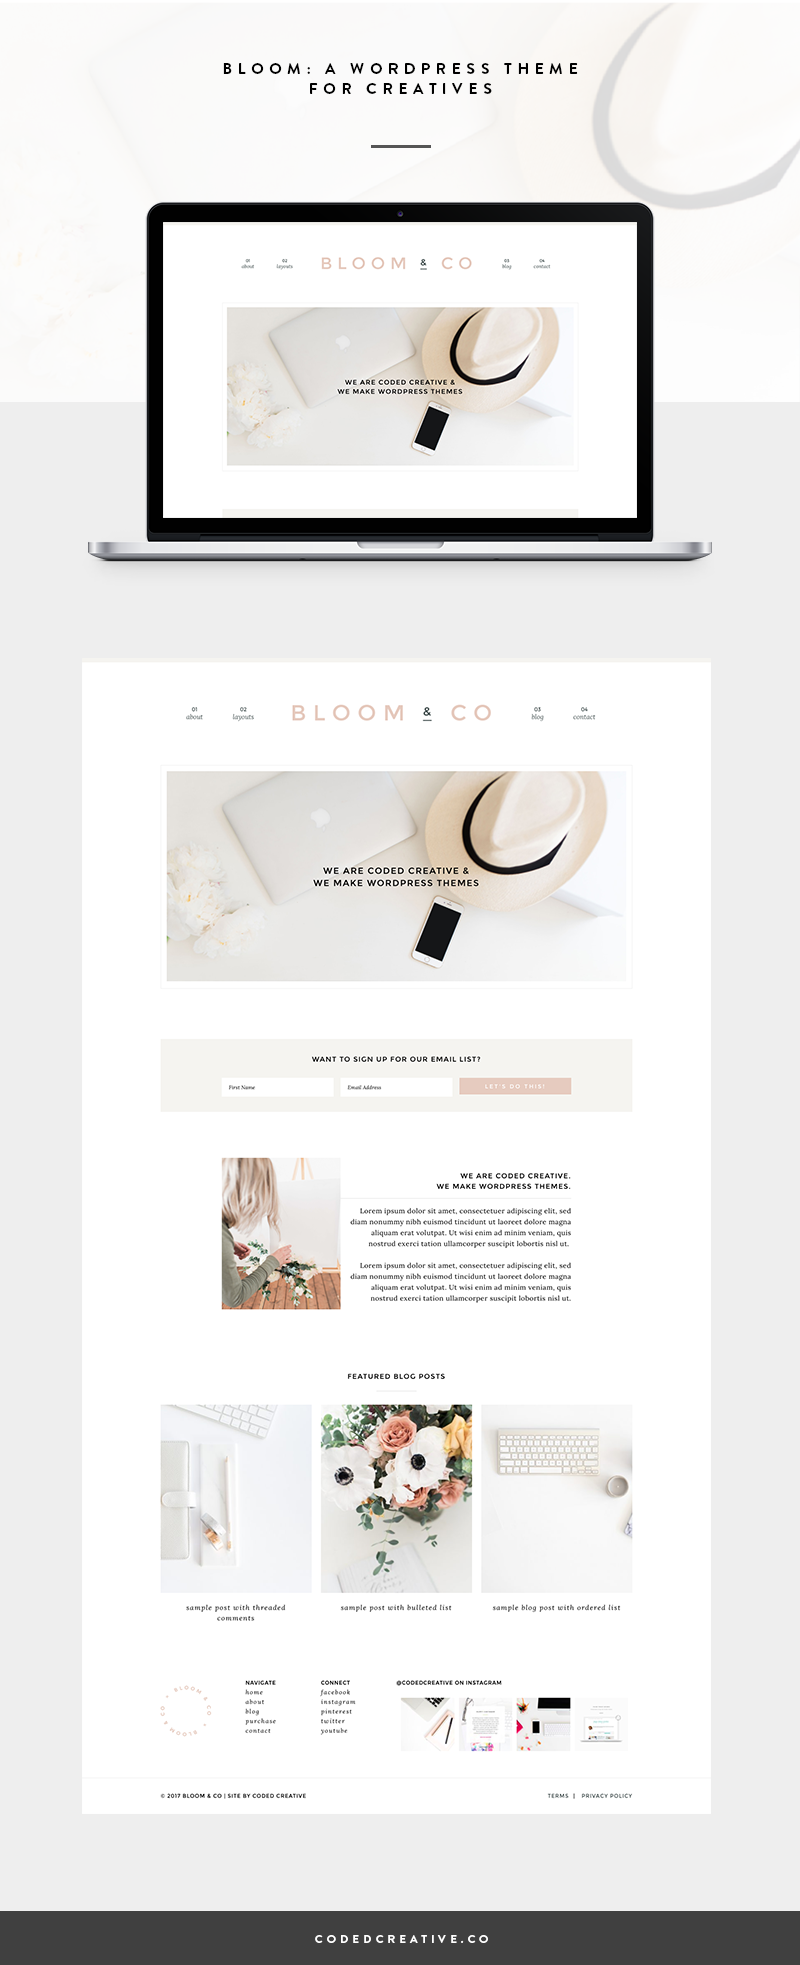 Bloom is a simple website and blog template created for the WordPress platform.It was created for creative business owners and bloggers who want a unique look for their site while still being able to grow their blog and business with ease.